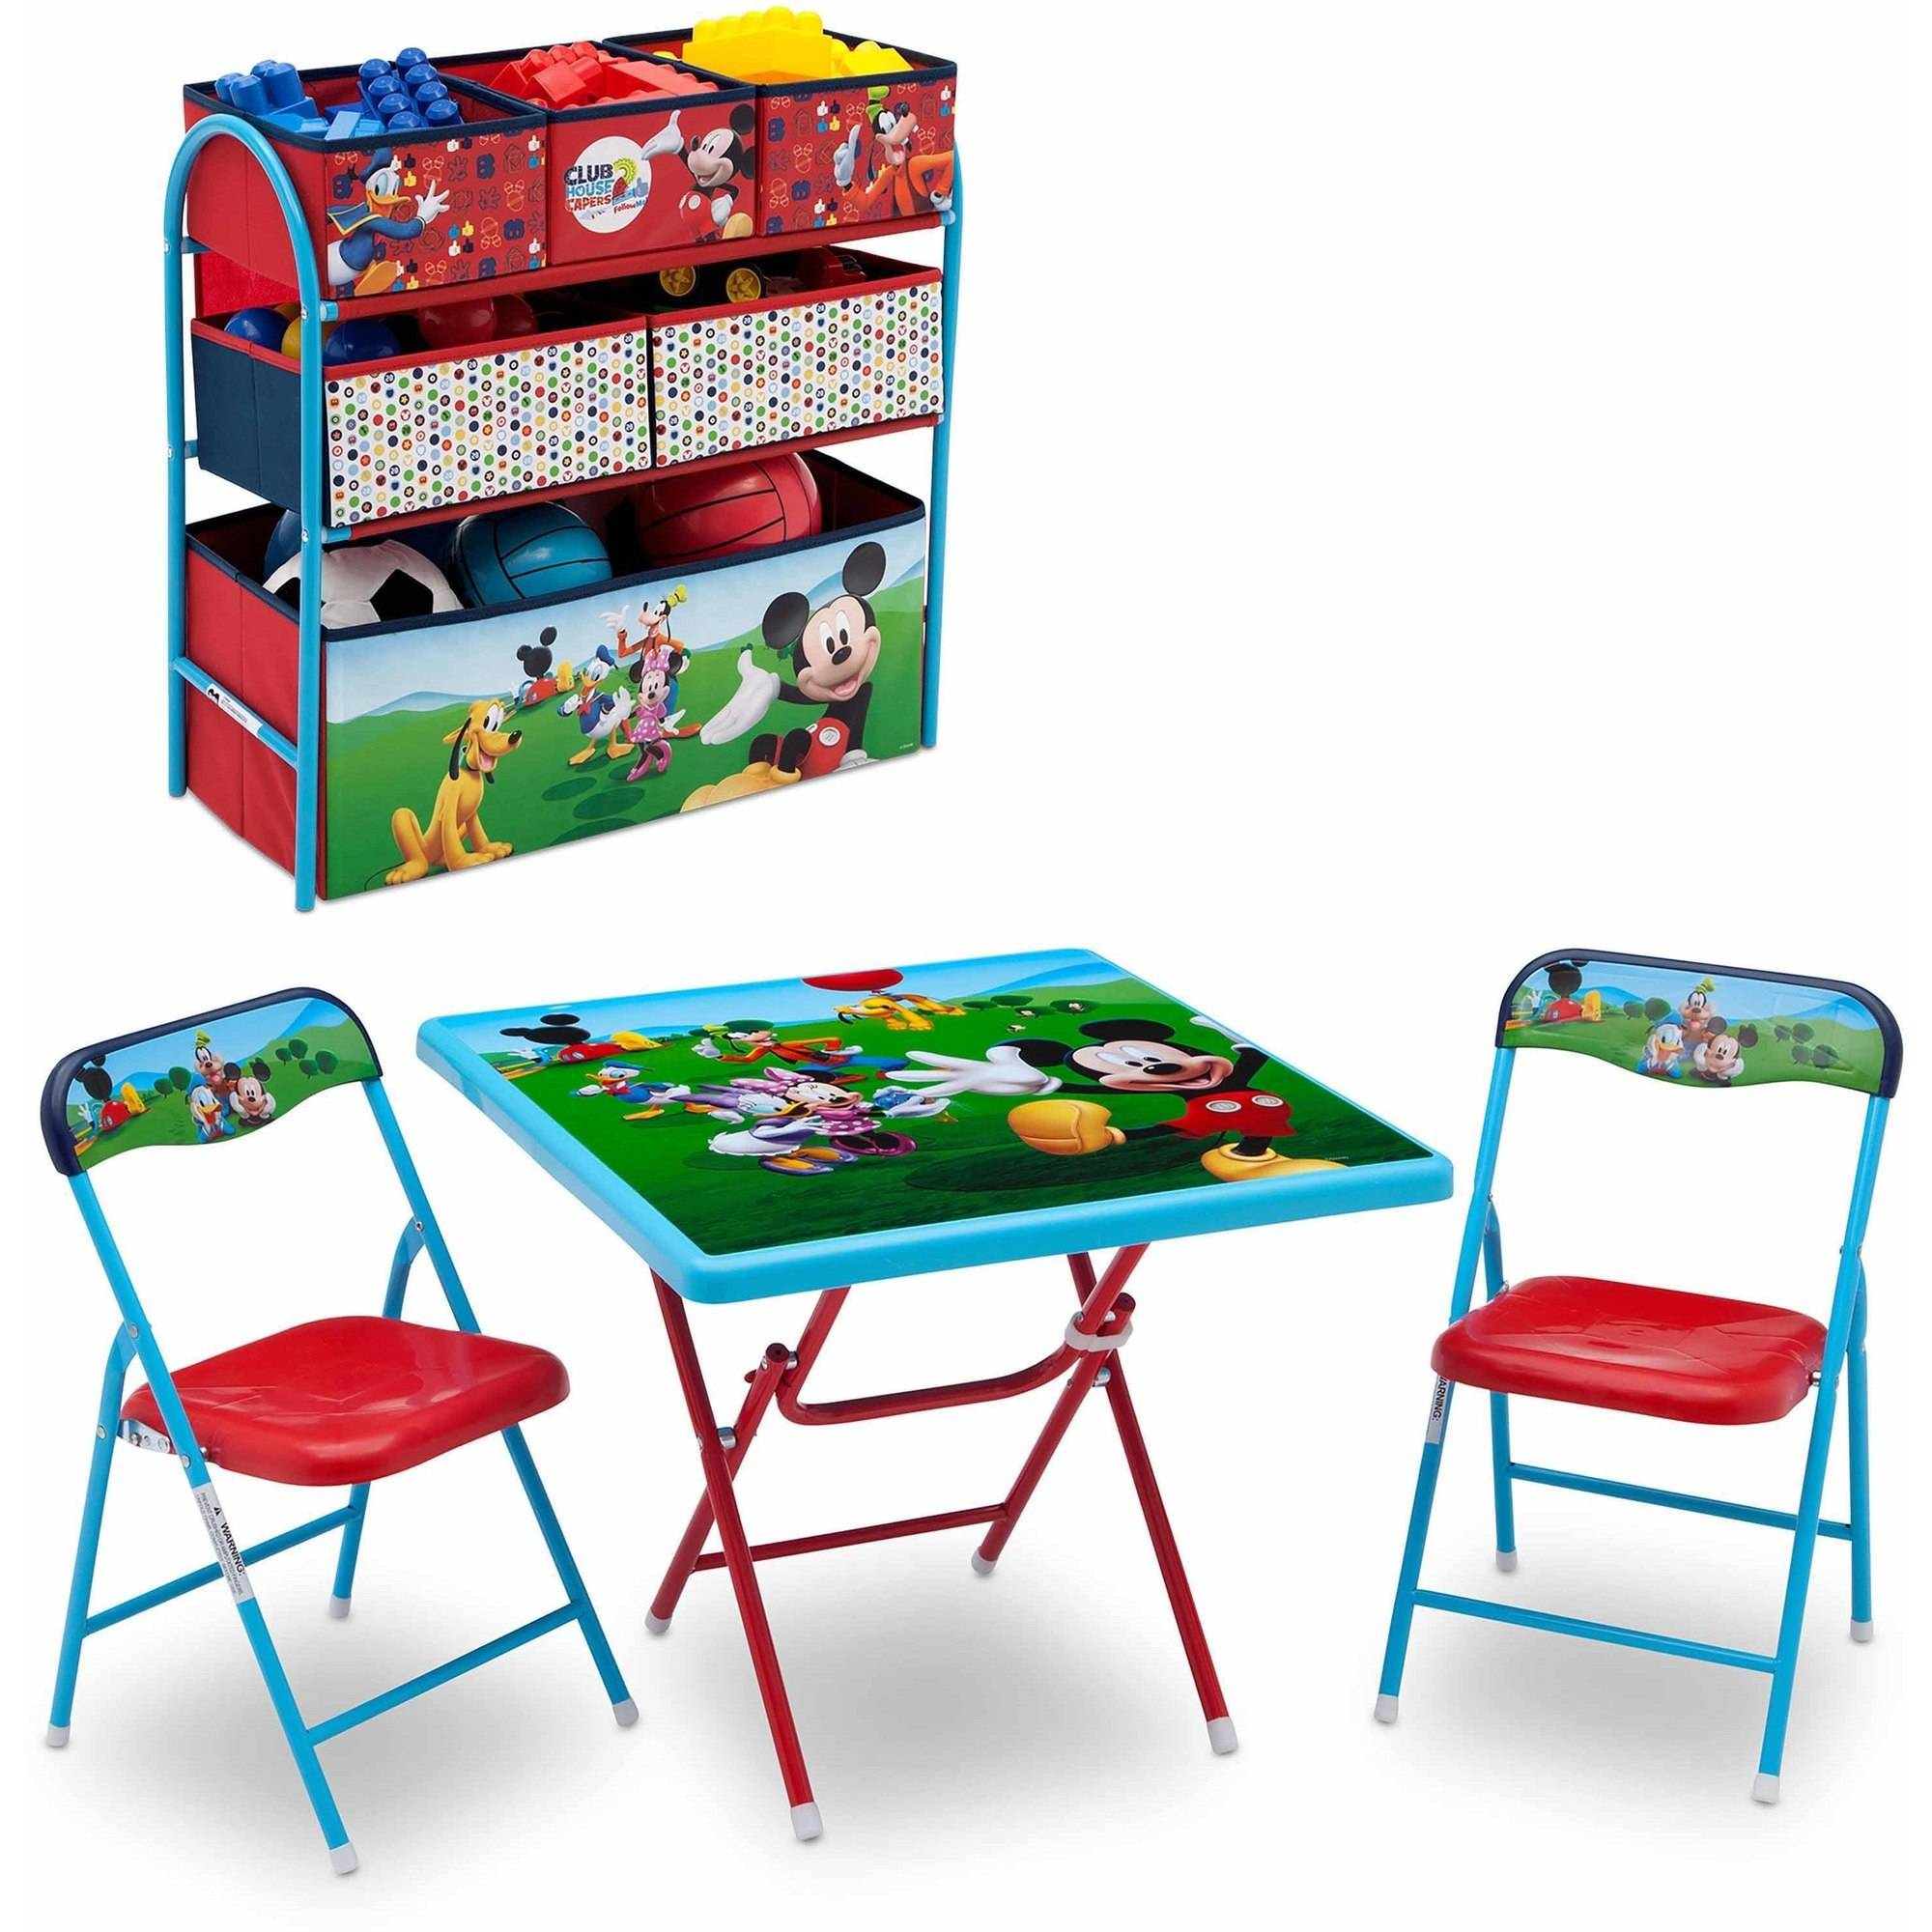 Disney Mickey Mouse Playroom Solution